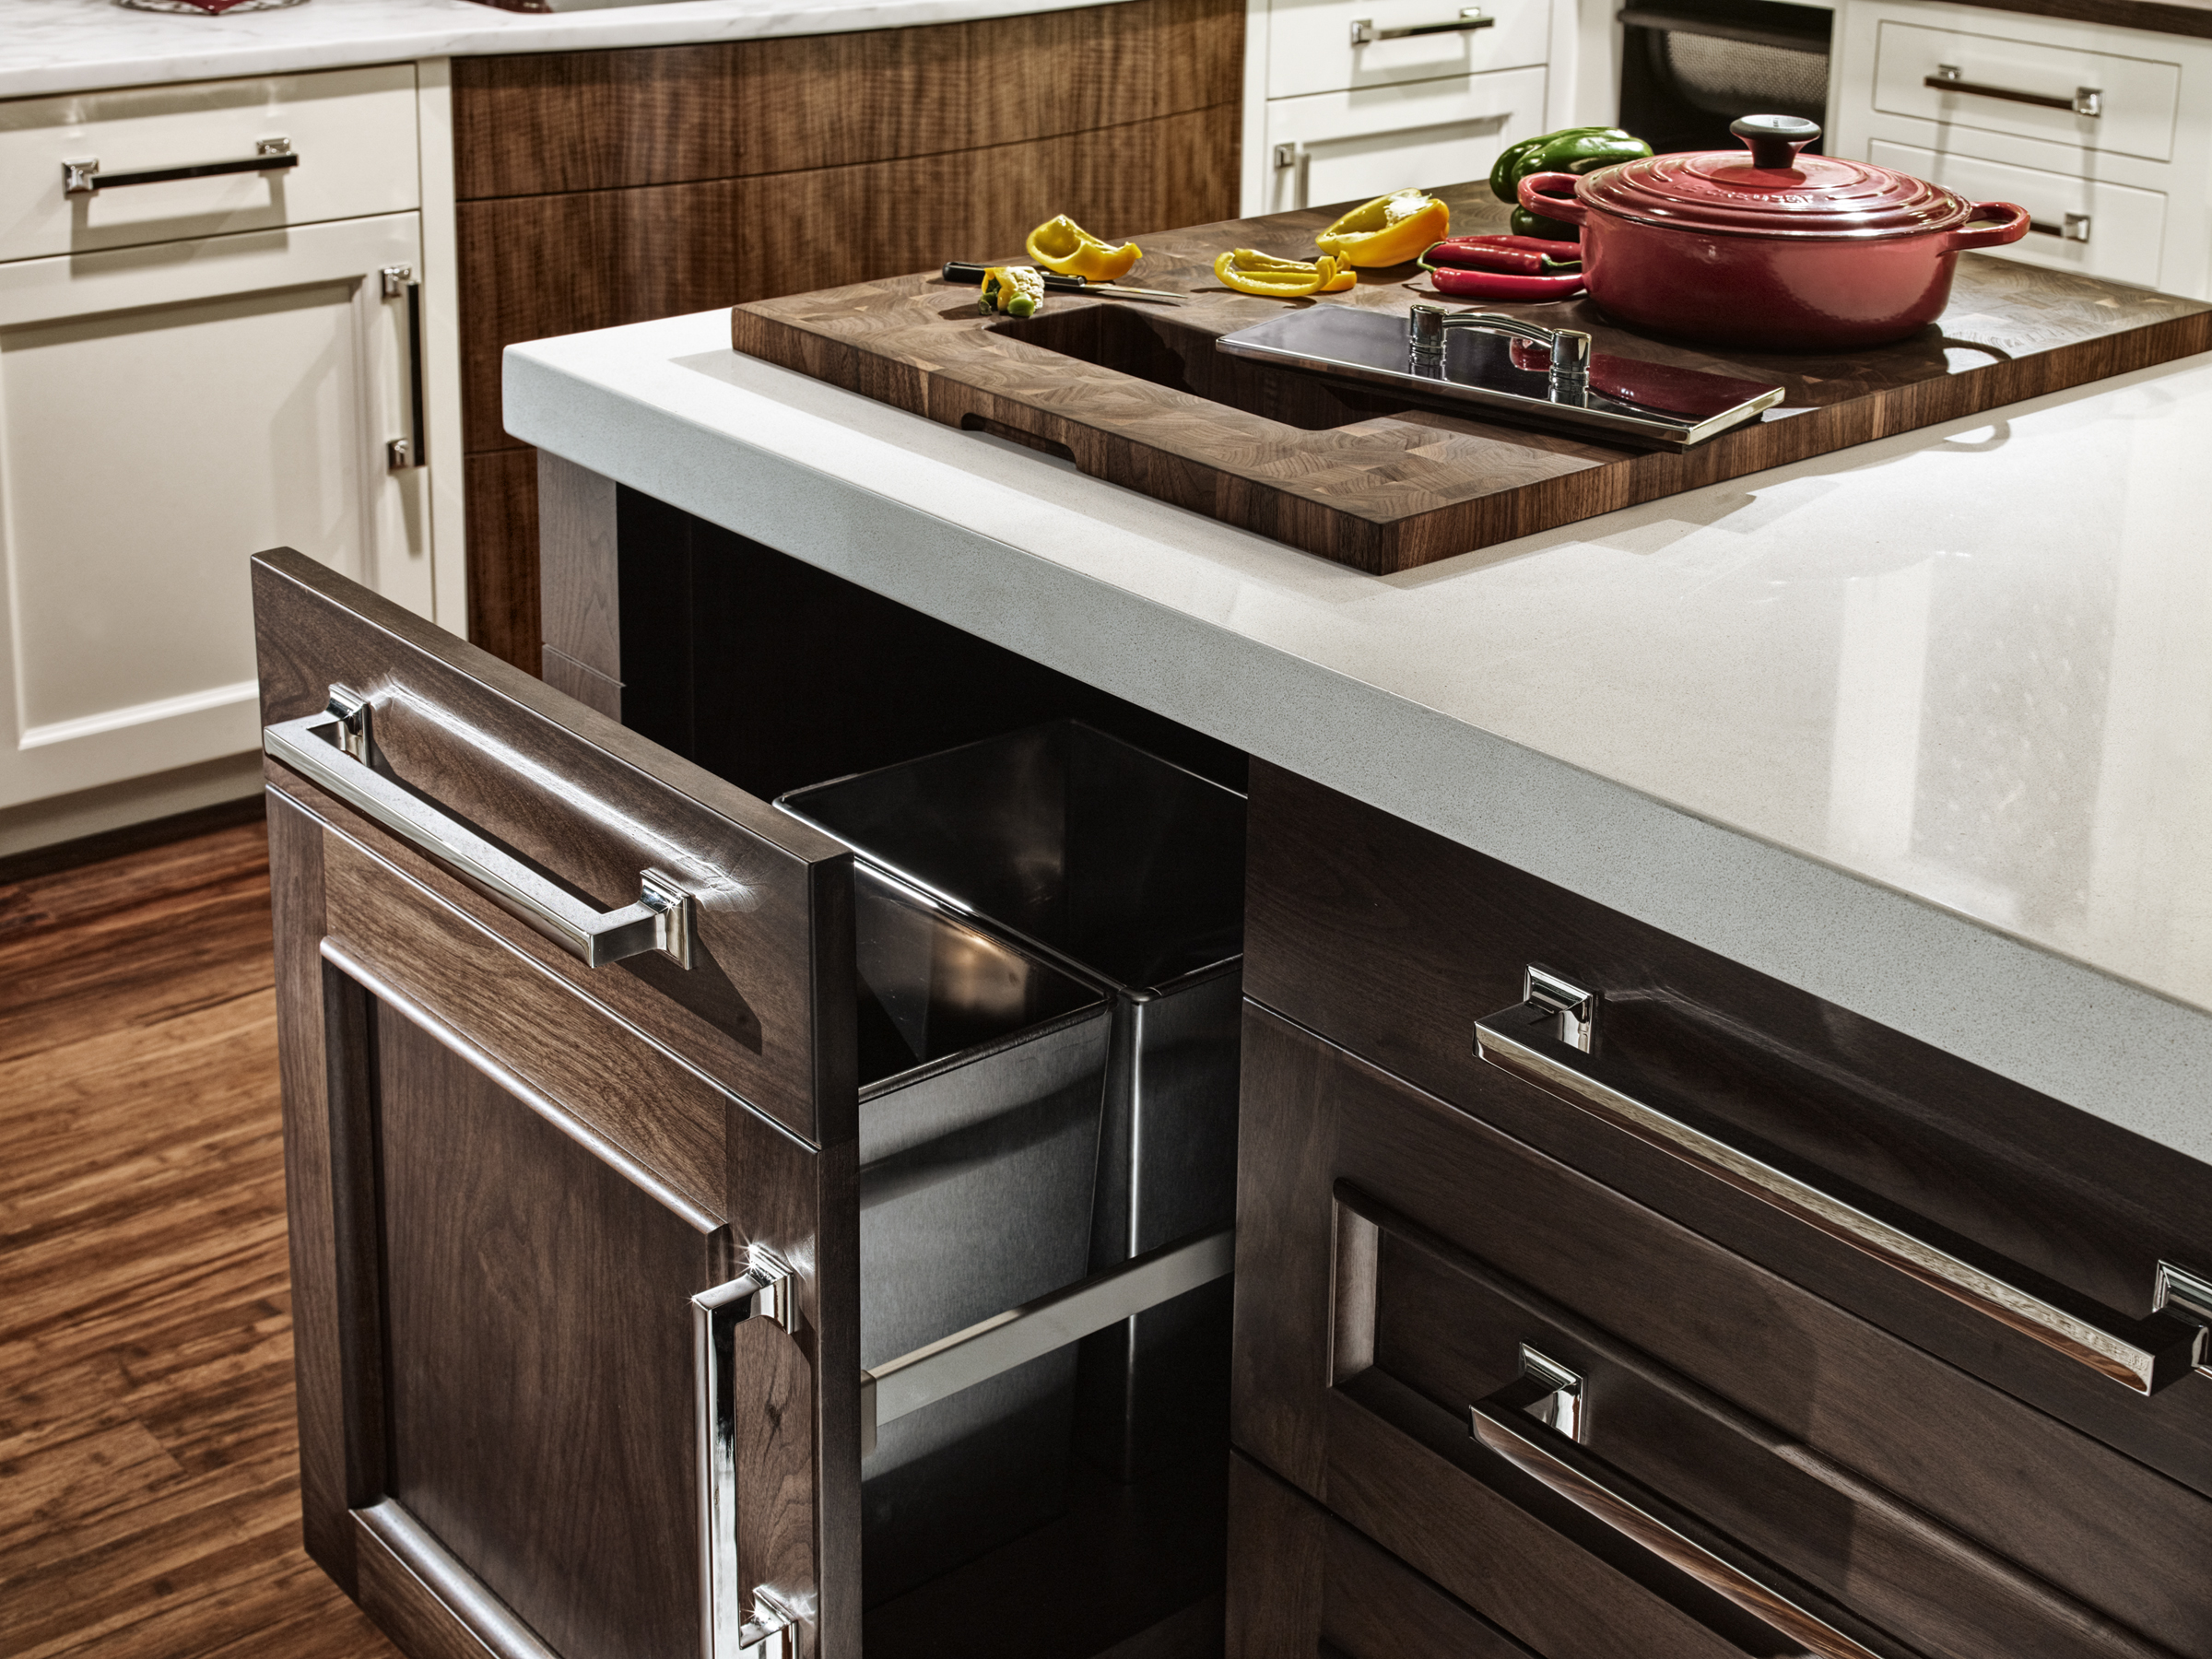 Integrated Butcher Block Countertops For Efficient Food Preparation